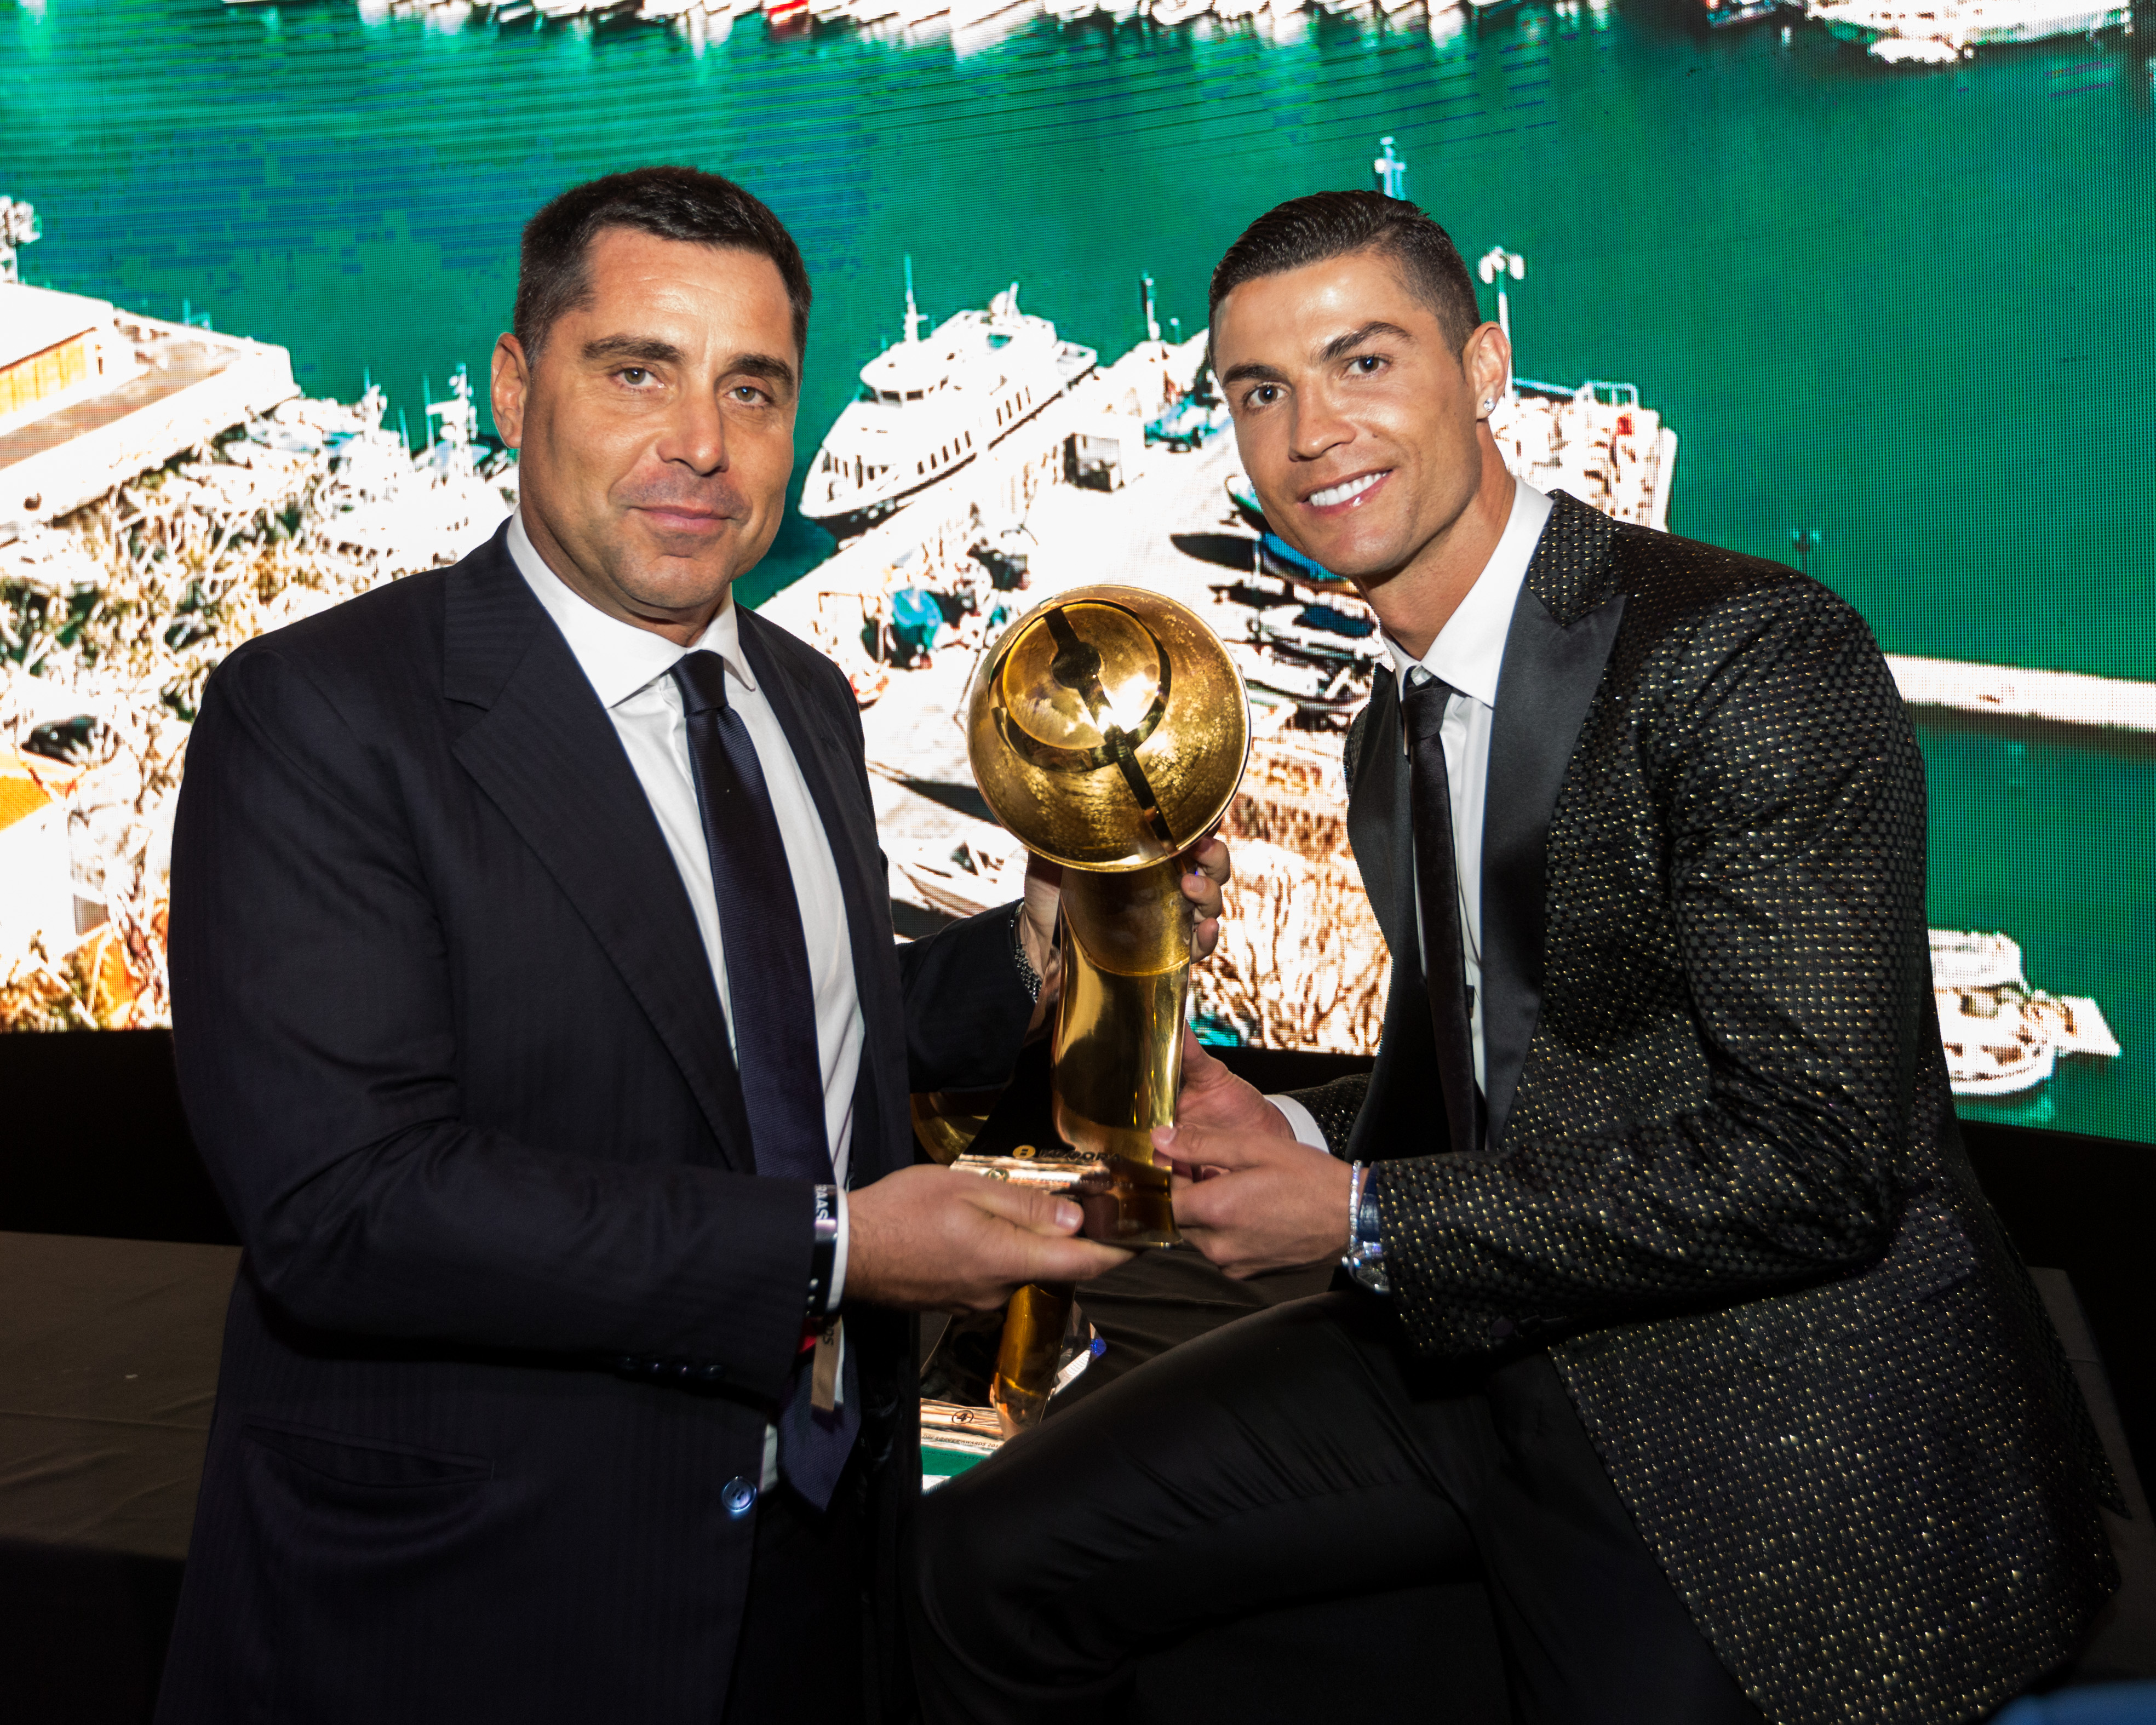 Riccardo Silva and Cristiano Ronaldo at Globe Soccer in Dubai